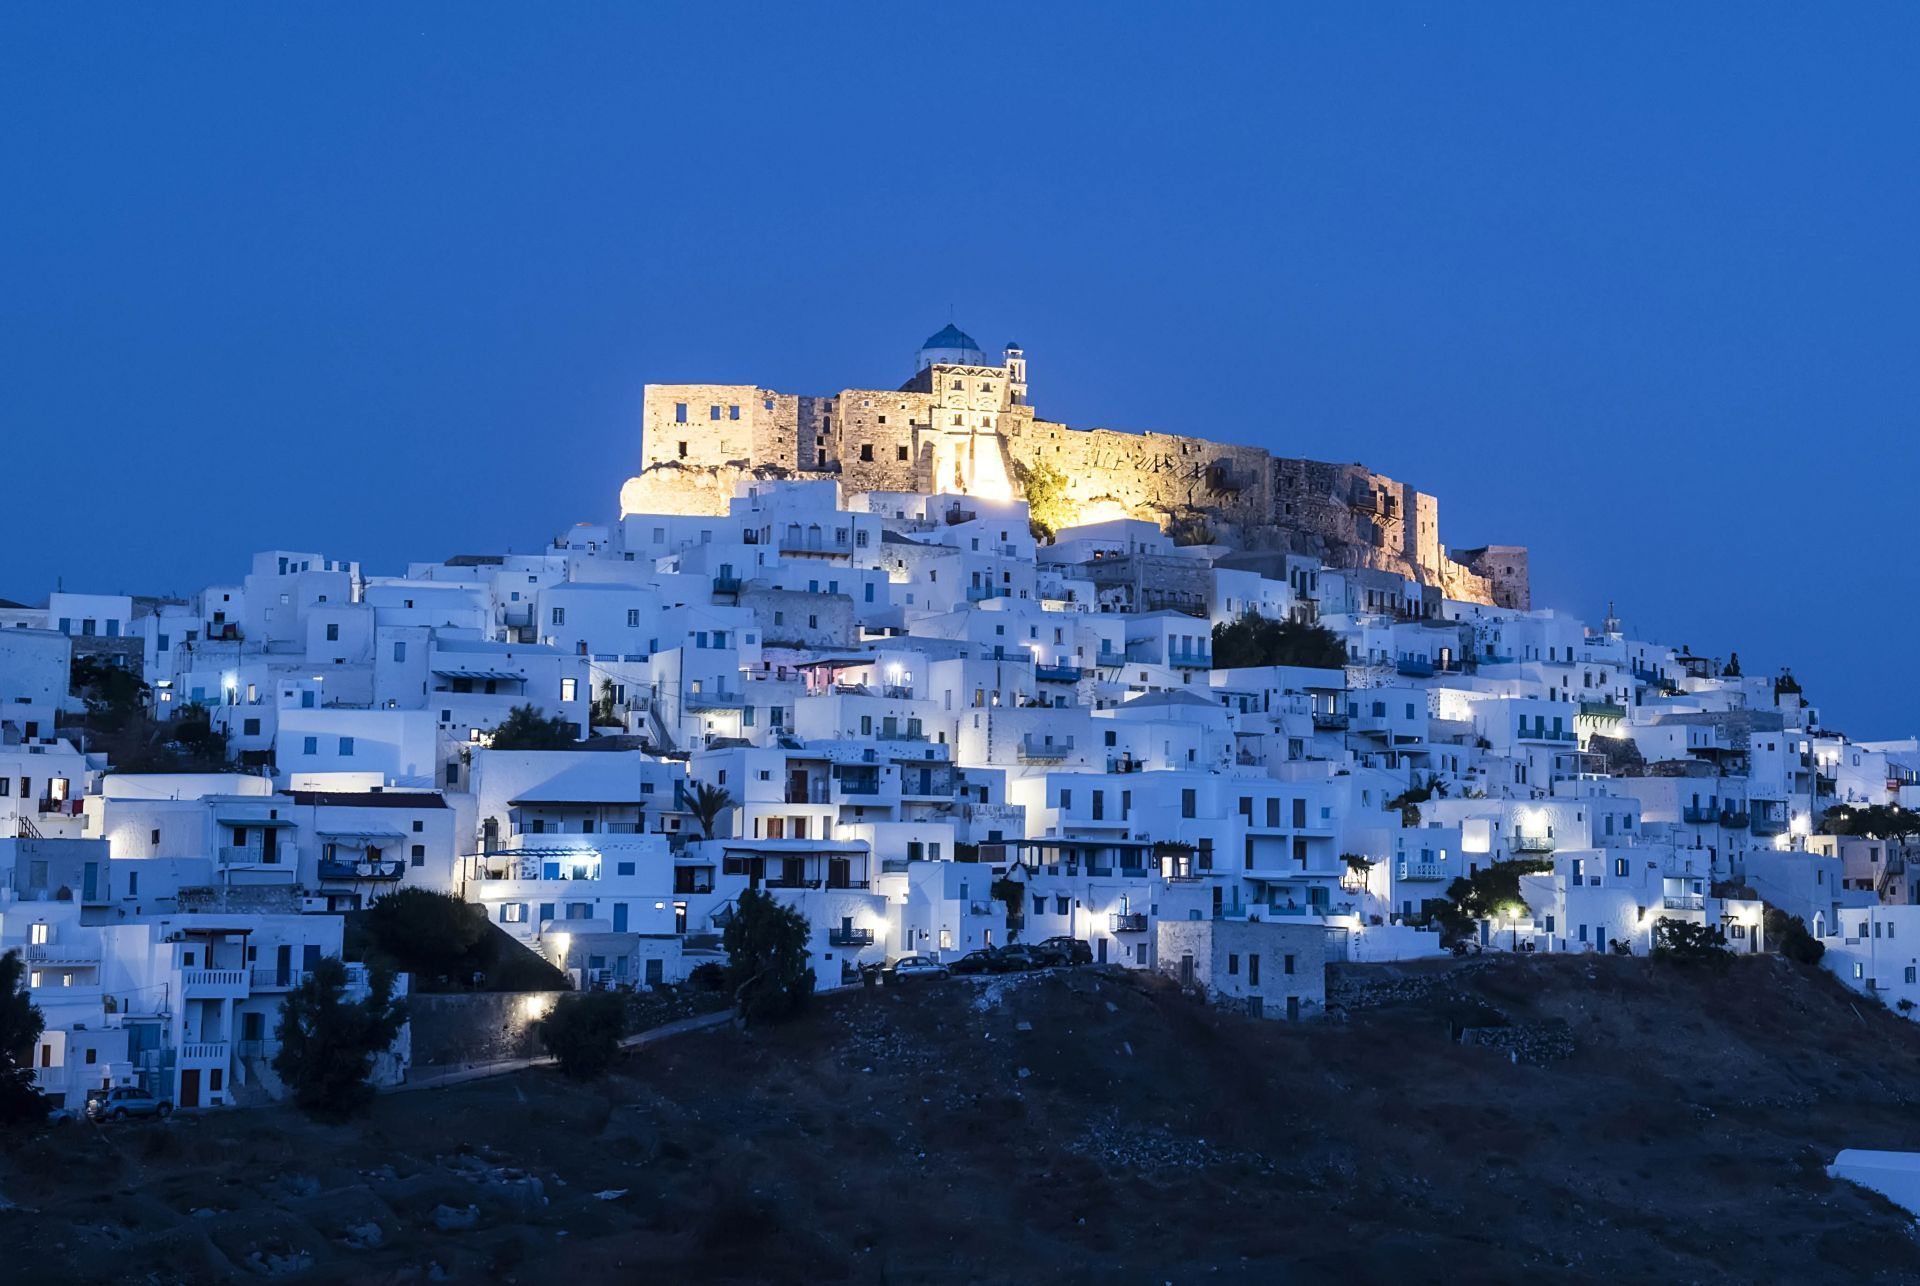 Accommodation and hotels in Astypalaia